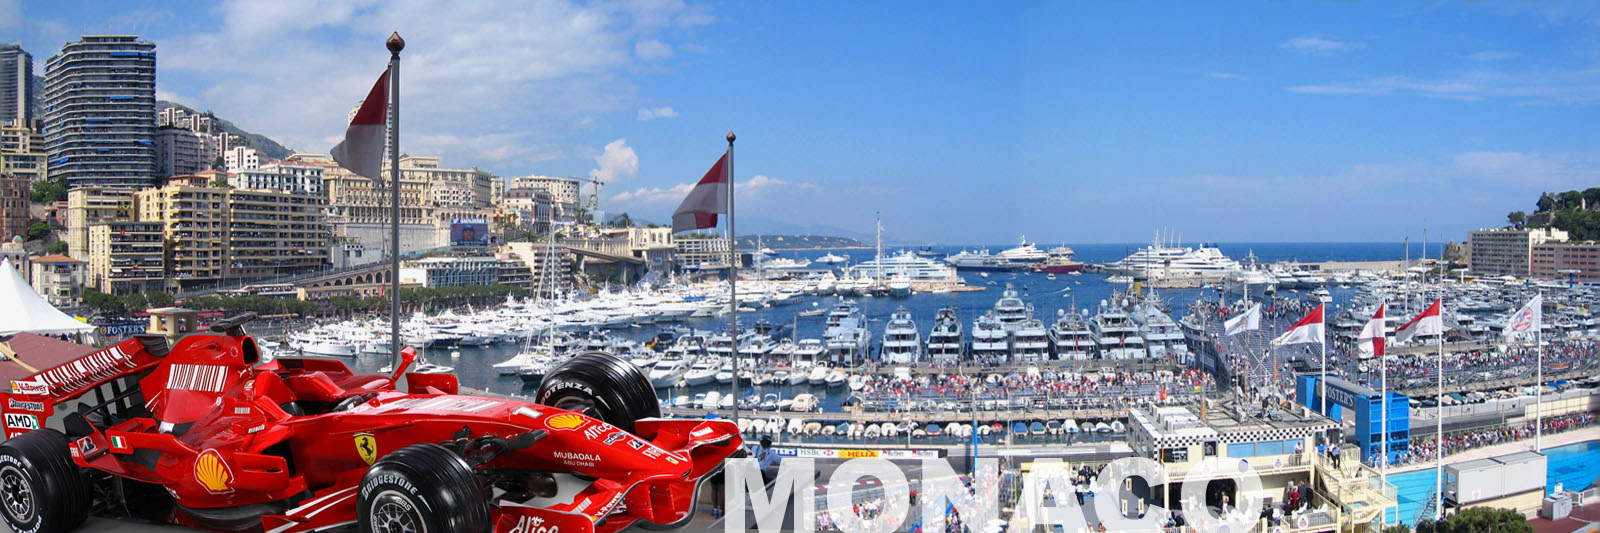 Monaco Harbour during Formula One Grand Prix